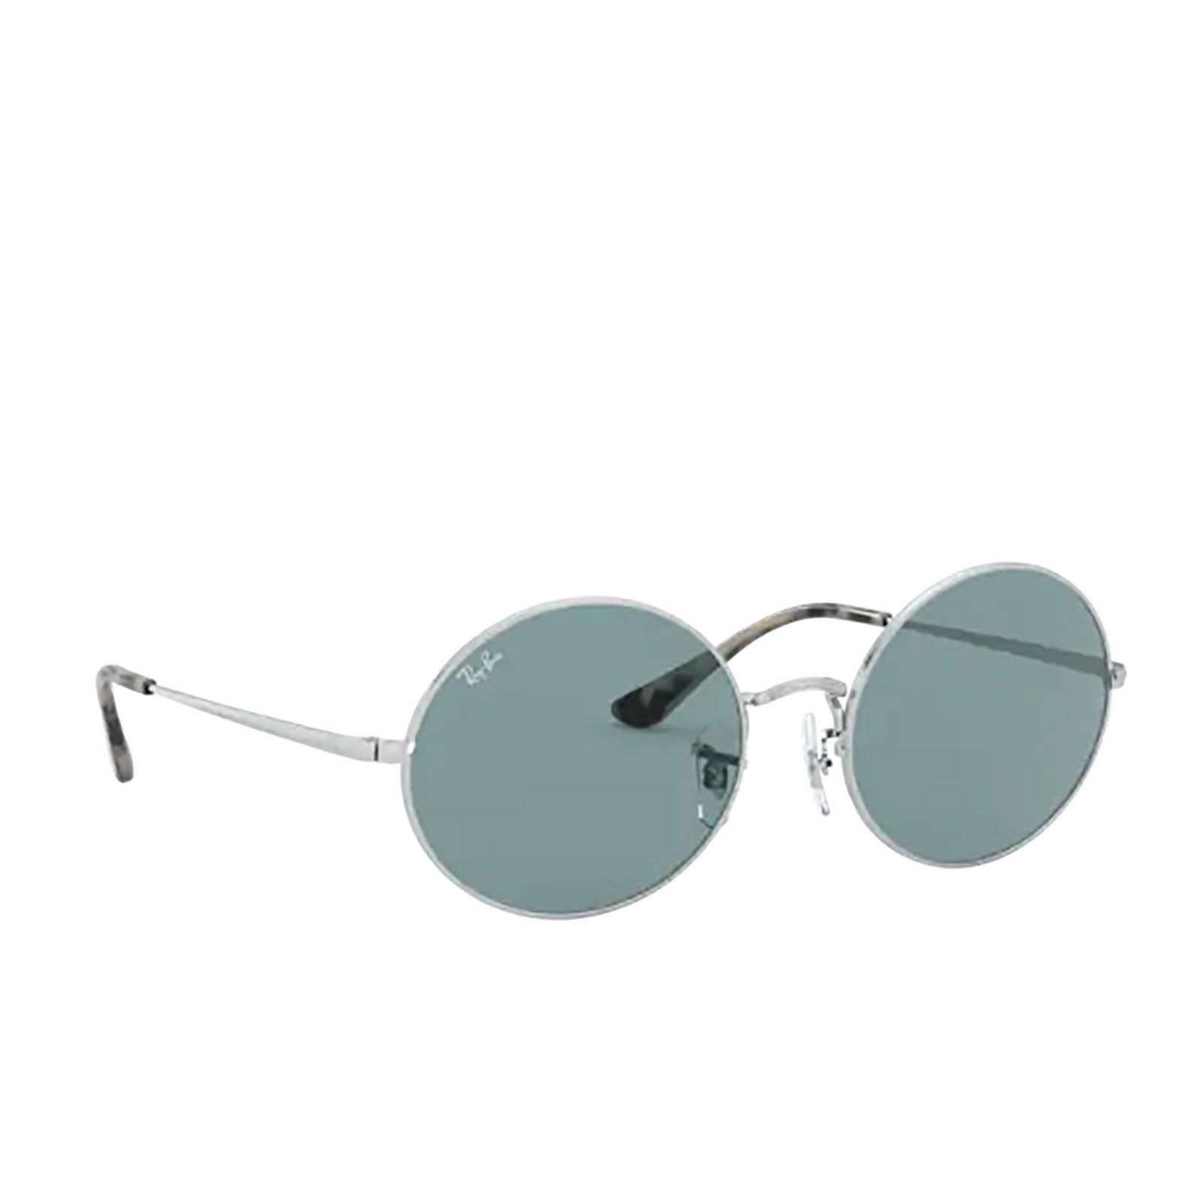 Ray-Ban® Oval Sunglasses: Oval RB1970 color Silver 919756 - three-quarters view.